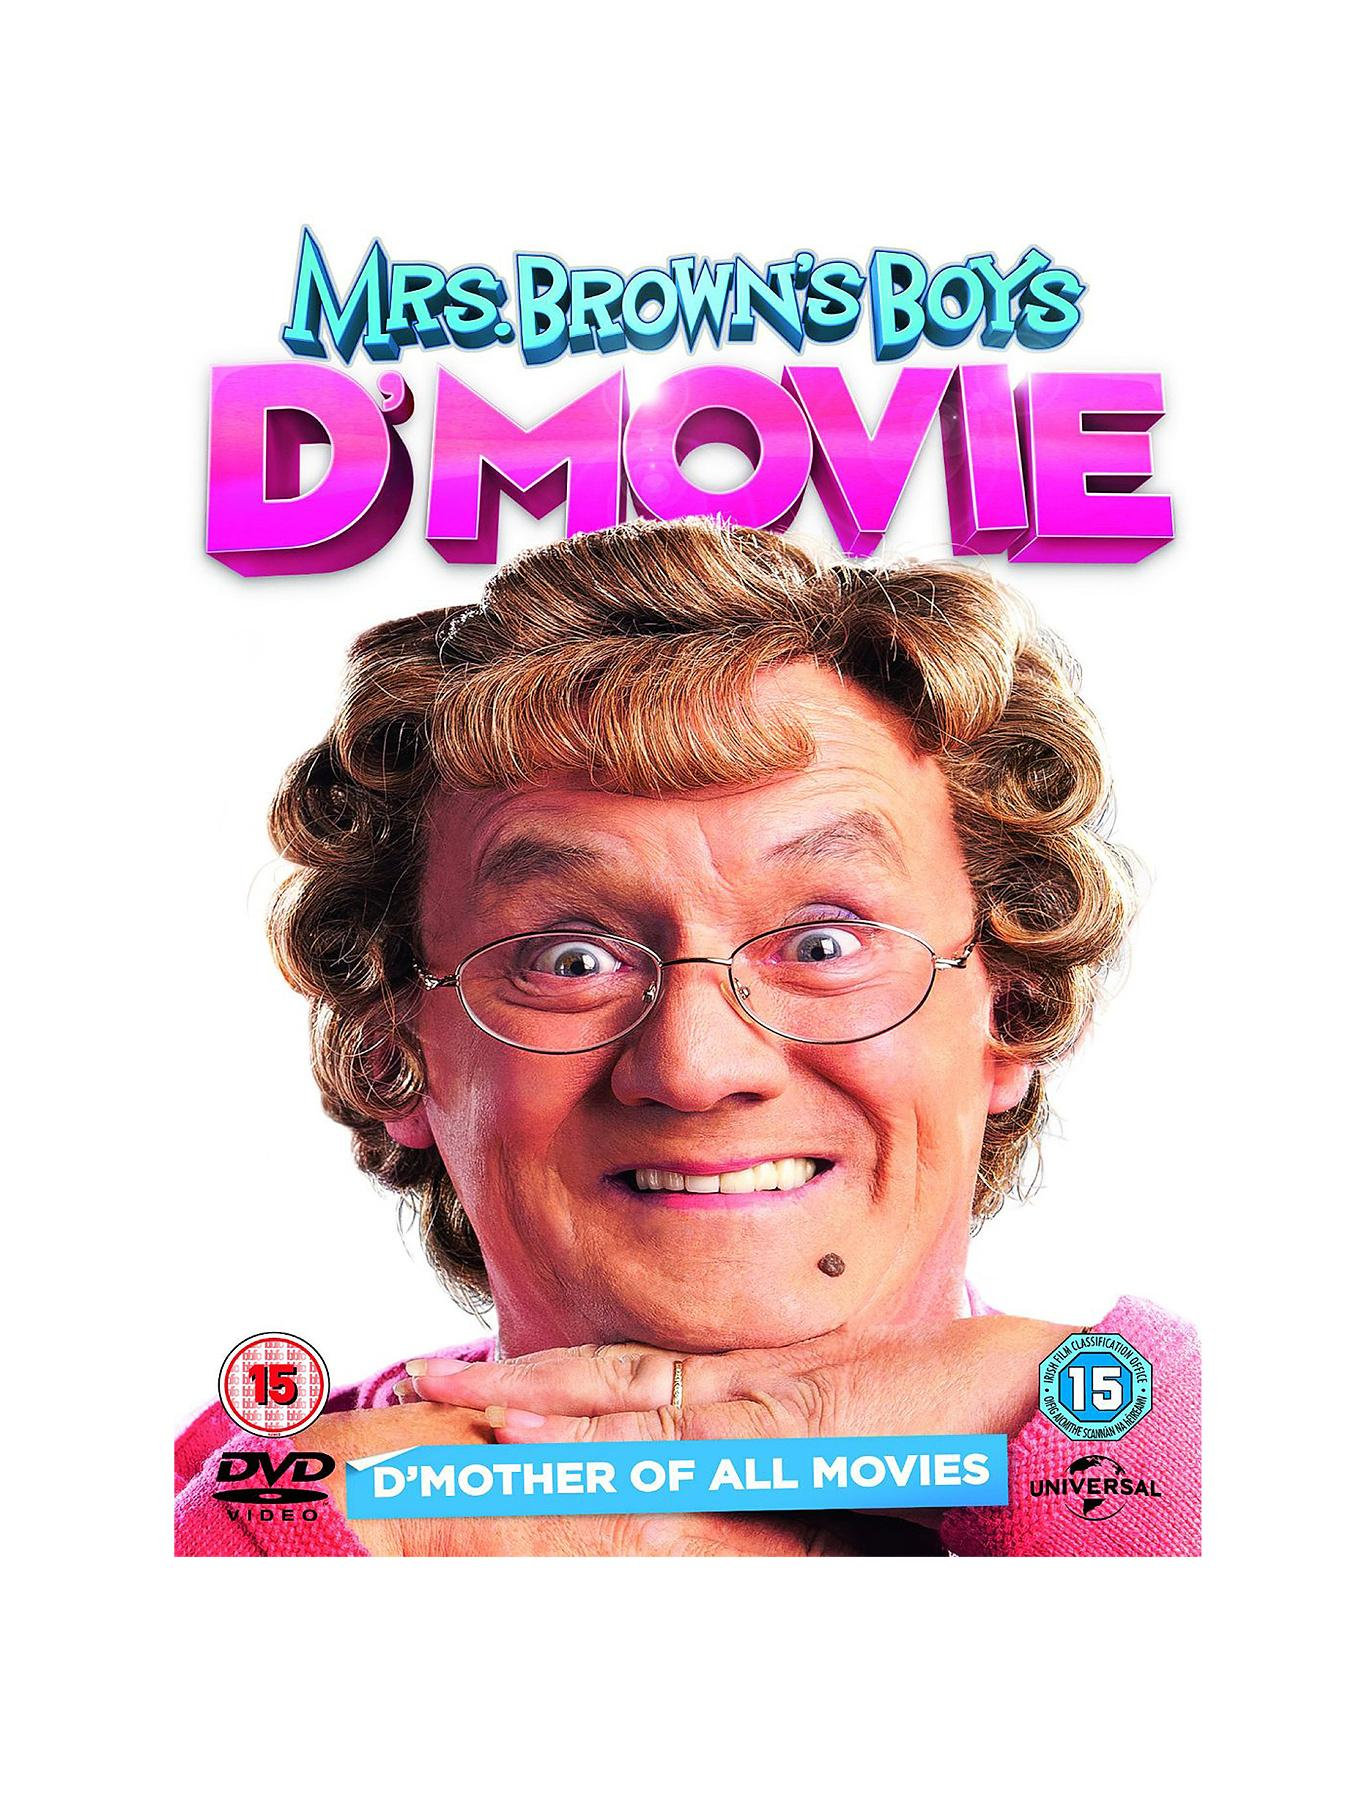 Mrs Brown's Boys D'Movie (2014) - DVD at Very, from Littlewoods